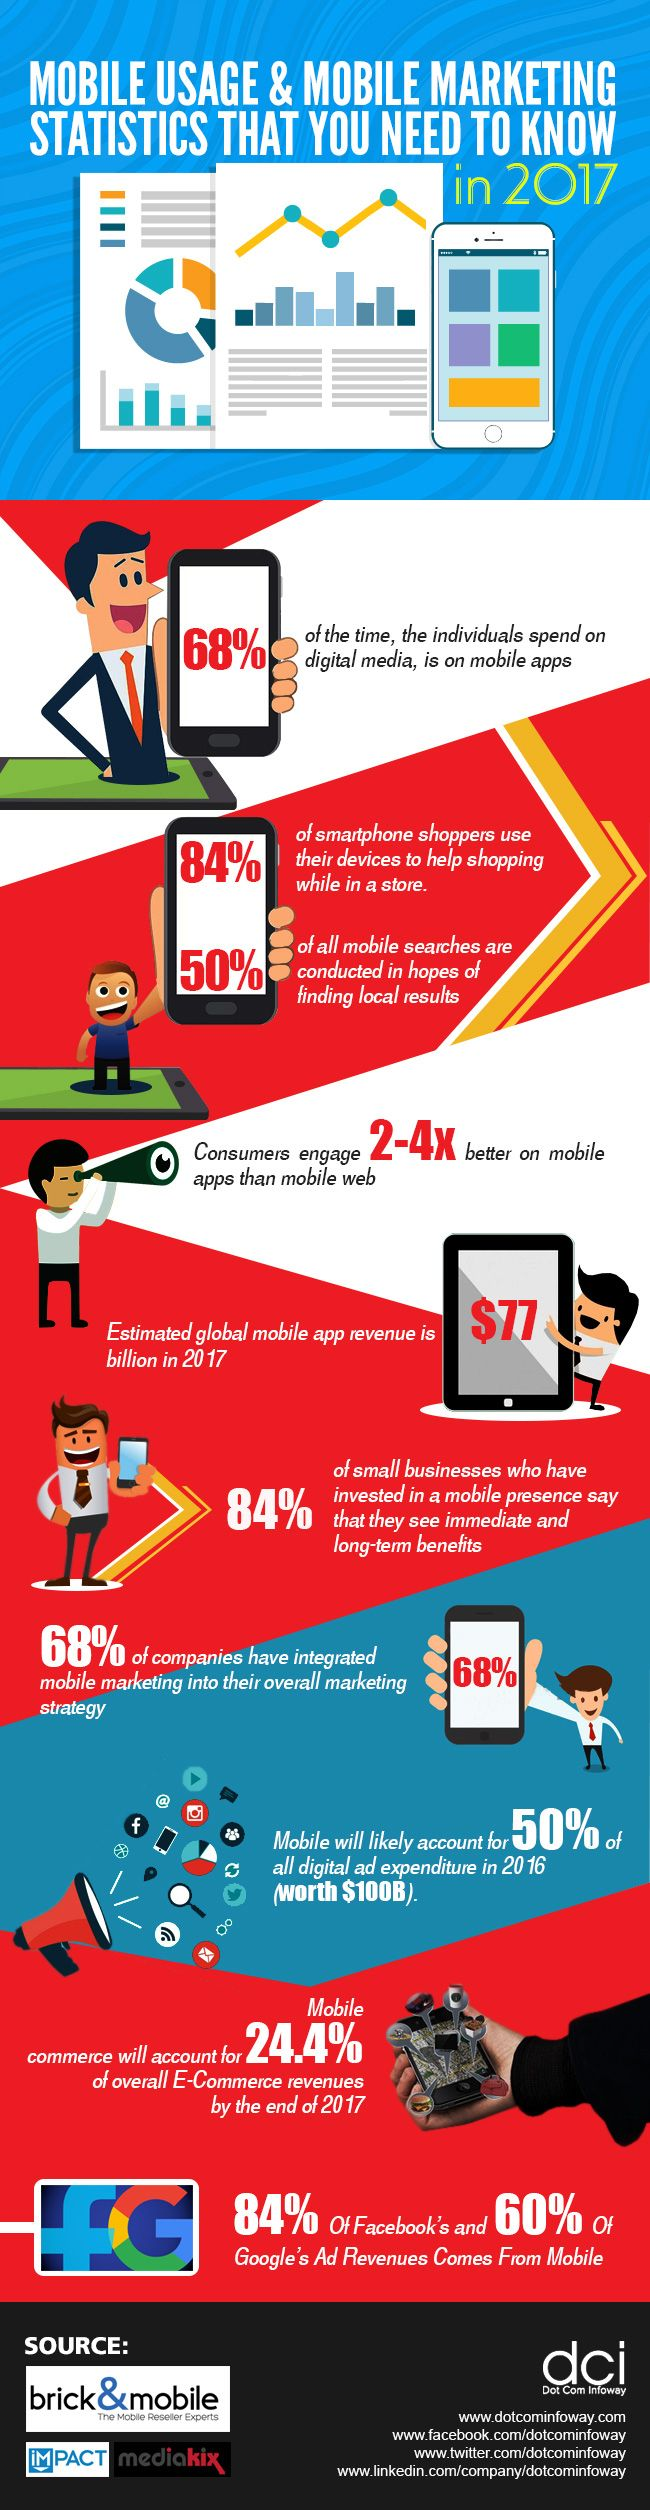 12#Mobile Usage Stats to Guide Your Website #Marketing Strategy #Infographic